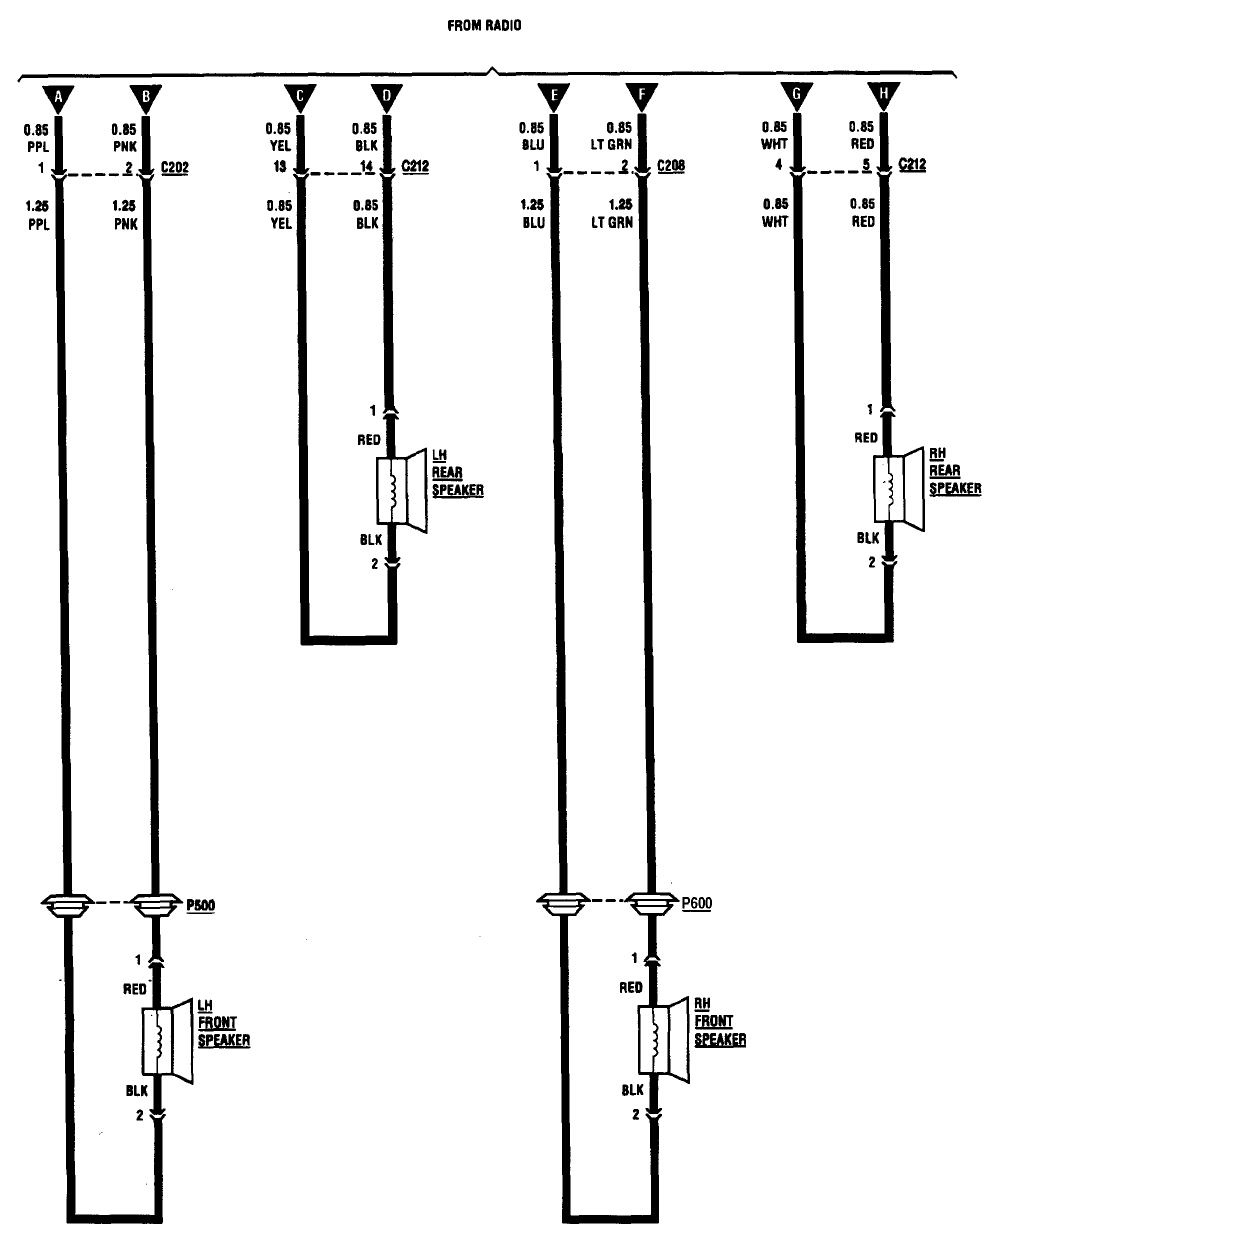 F2c Wiring Diagram For 1992 Geo Prizm Wiring Library